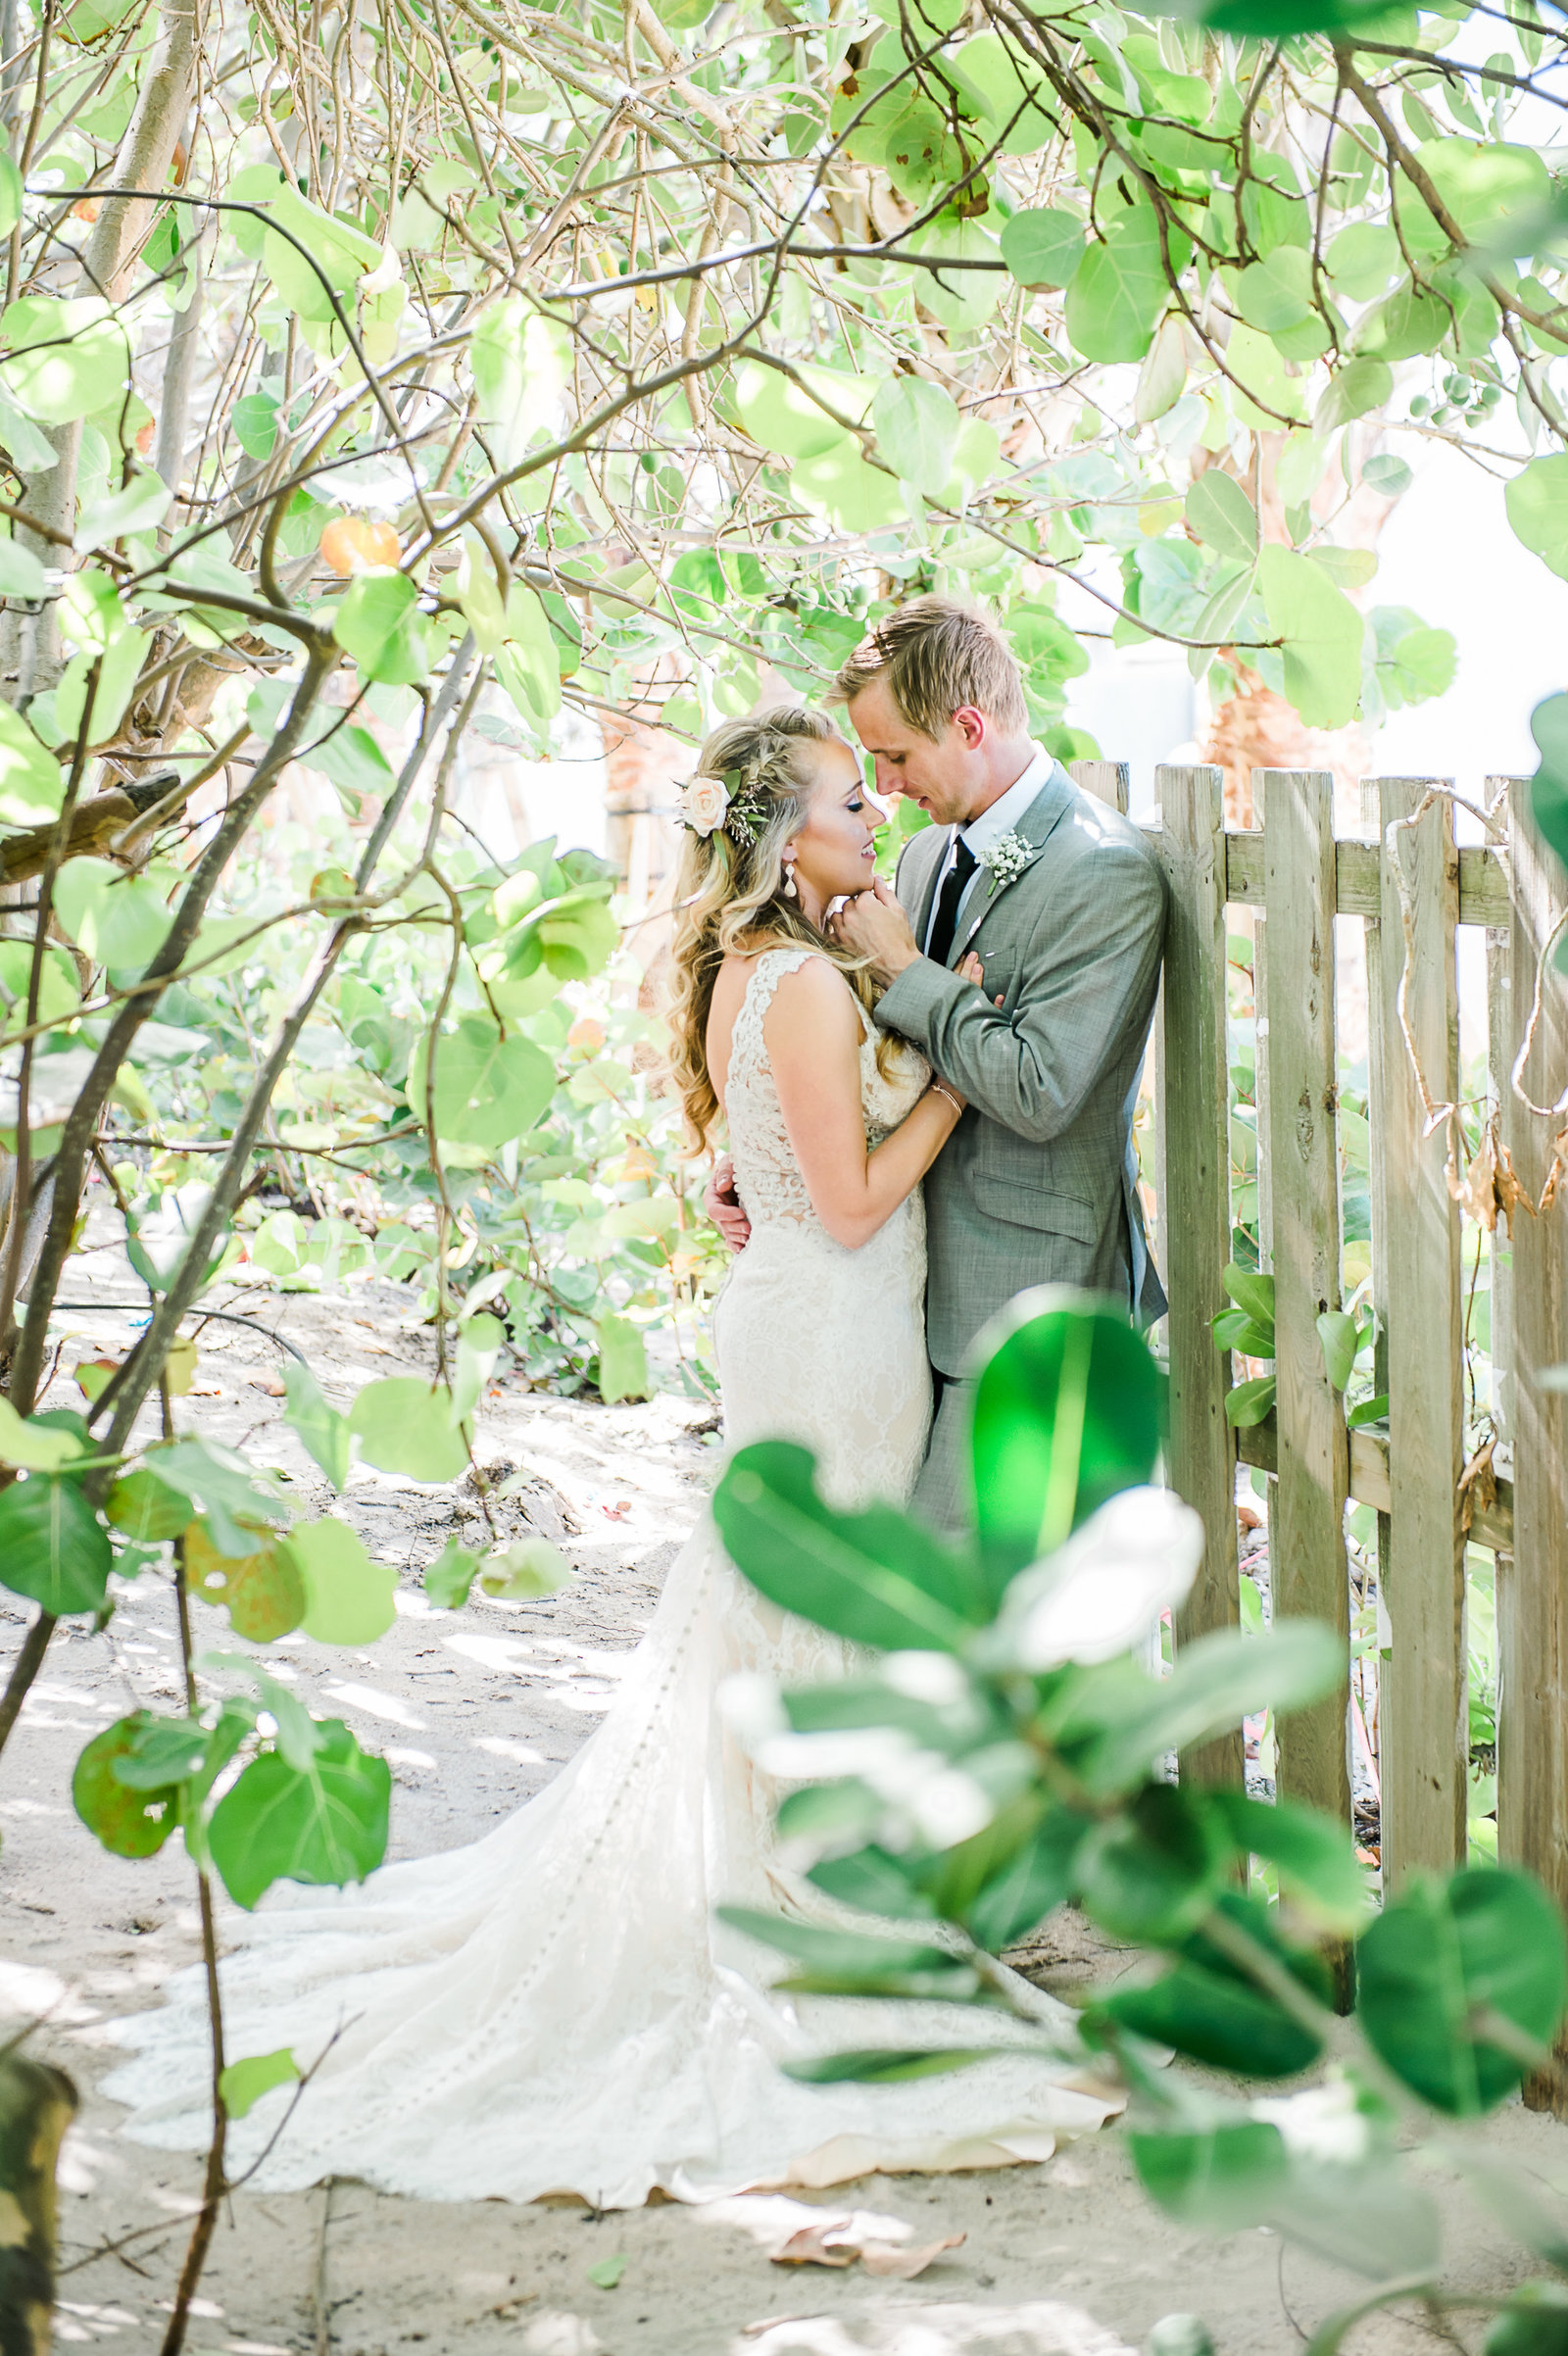 Romantic Bride and Groom - Hilton Singer Island Wedding  - Palm Beach Wedding Photography by Palm Beach Photography, Inc.